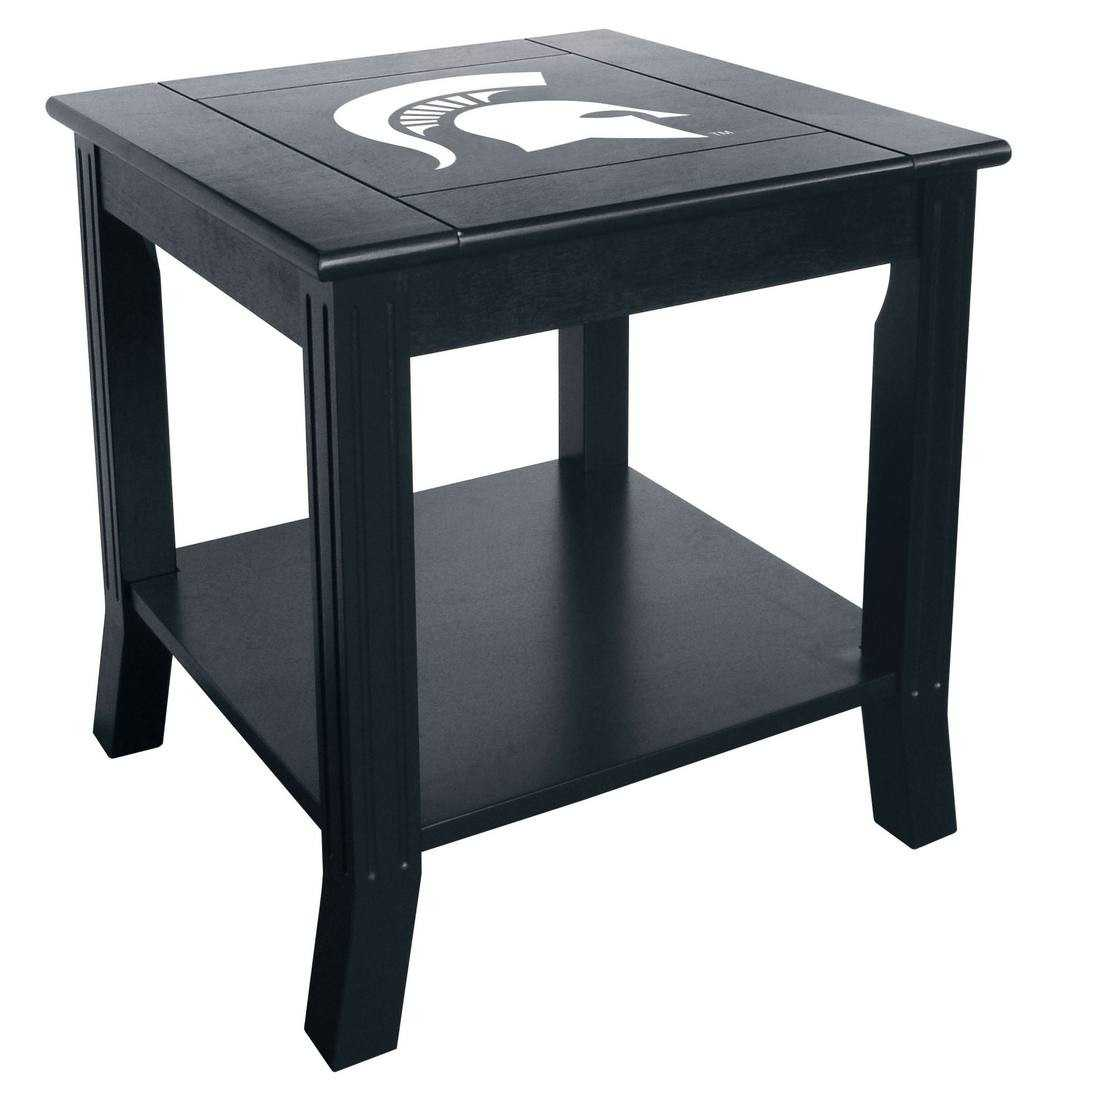 MICHIGAN STATE SIDE TABLE